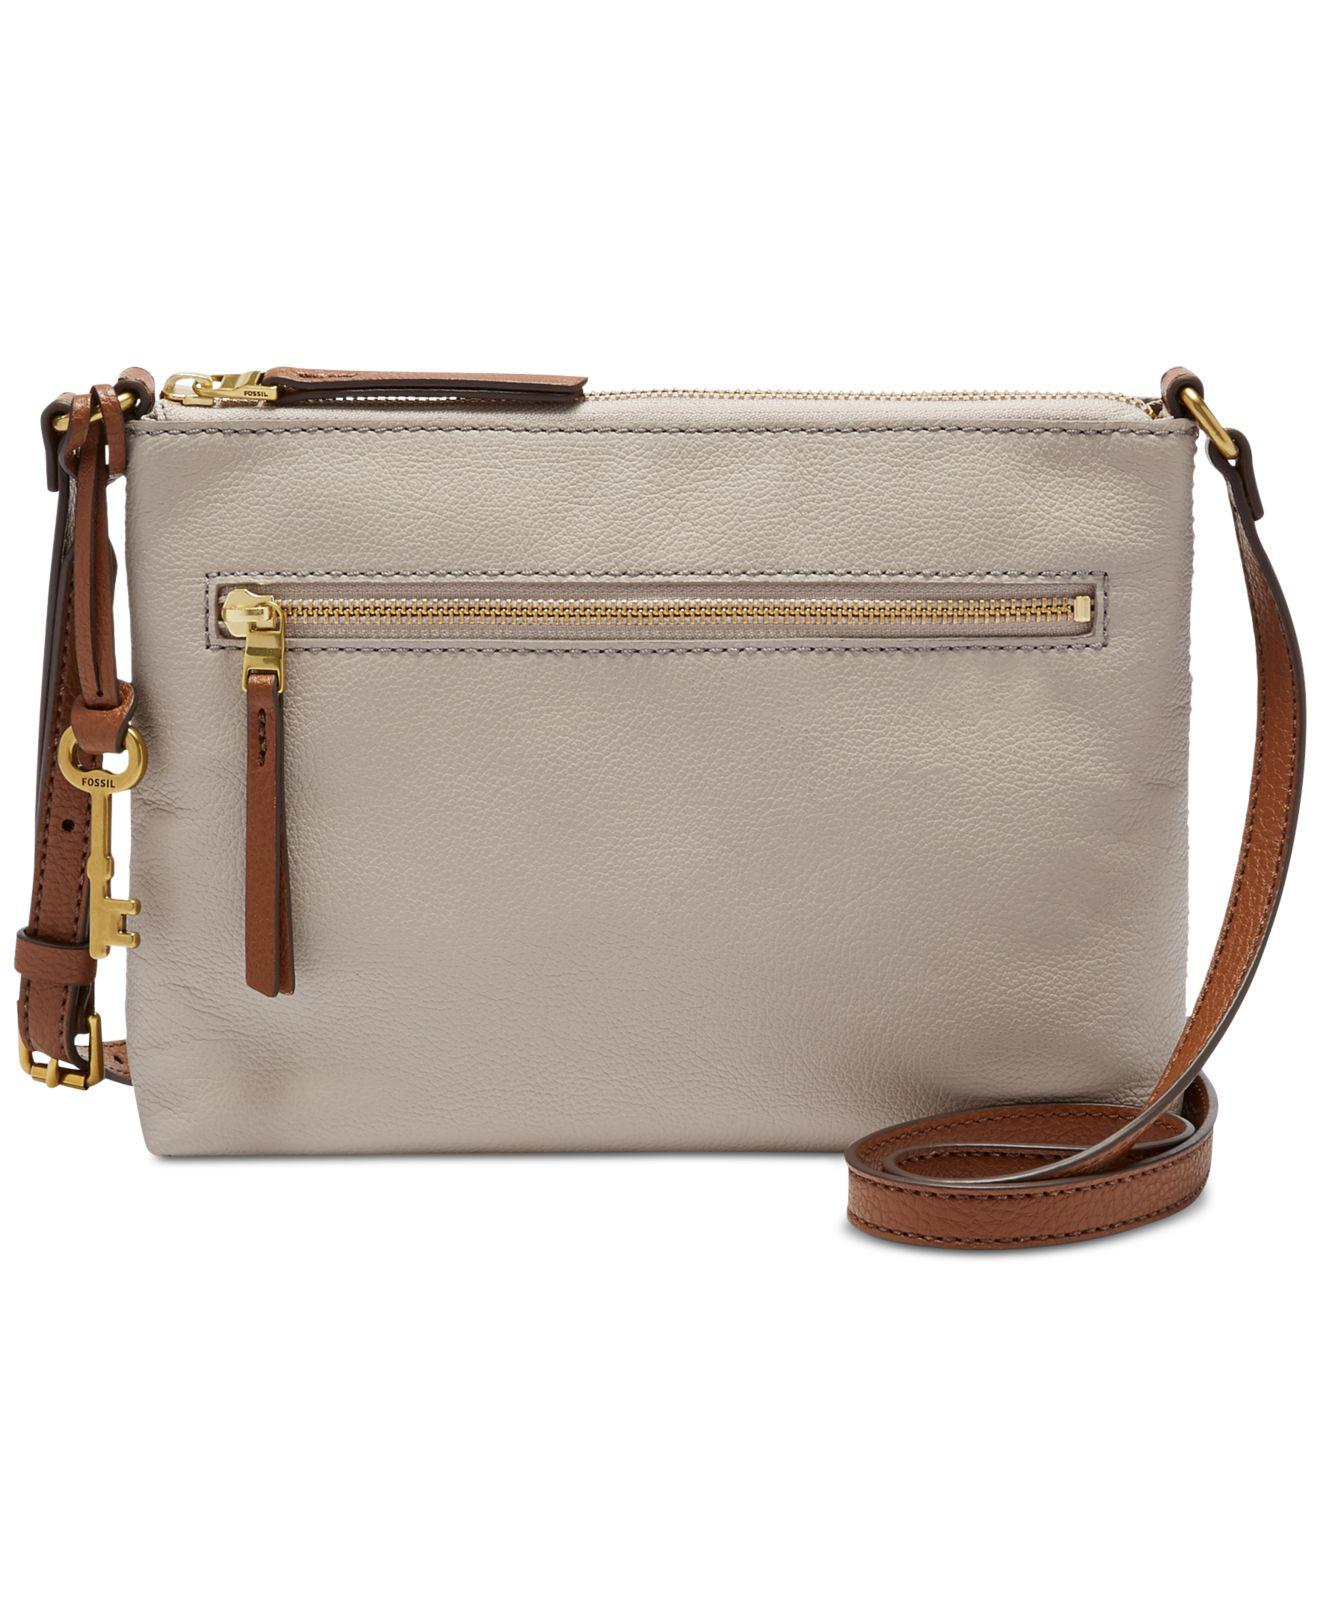 91651428b4 Lyst - Fossil Fiona Small Leather Crossbody in Gray